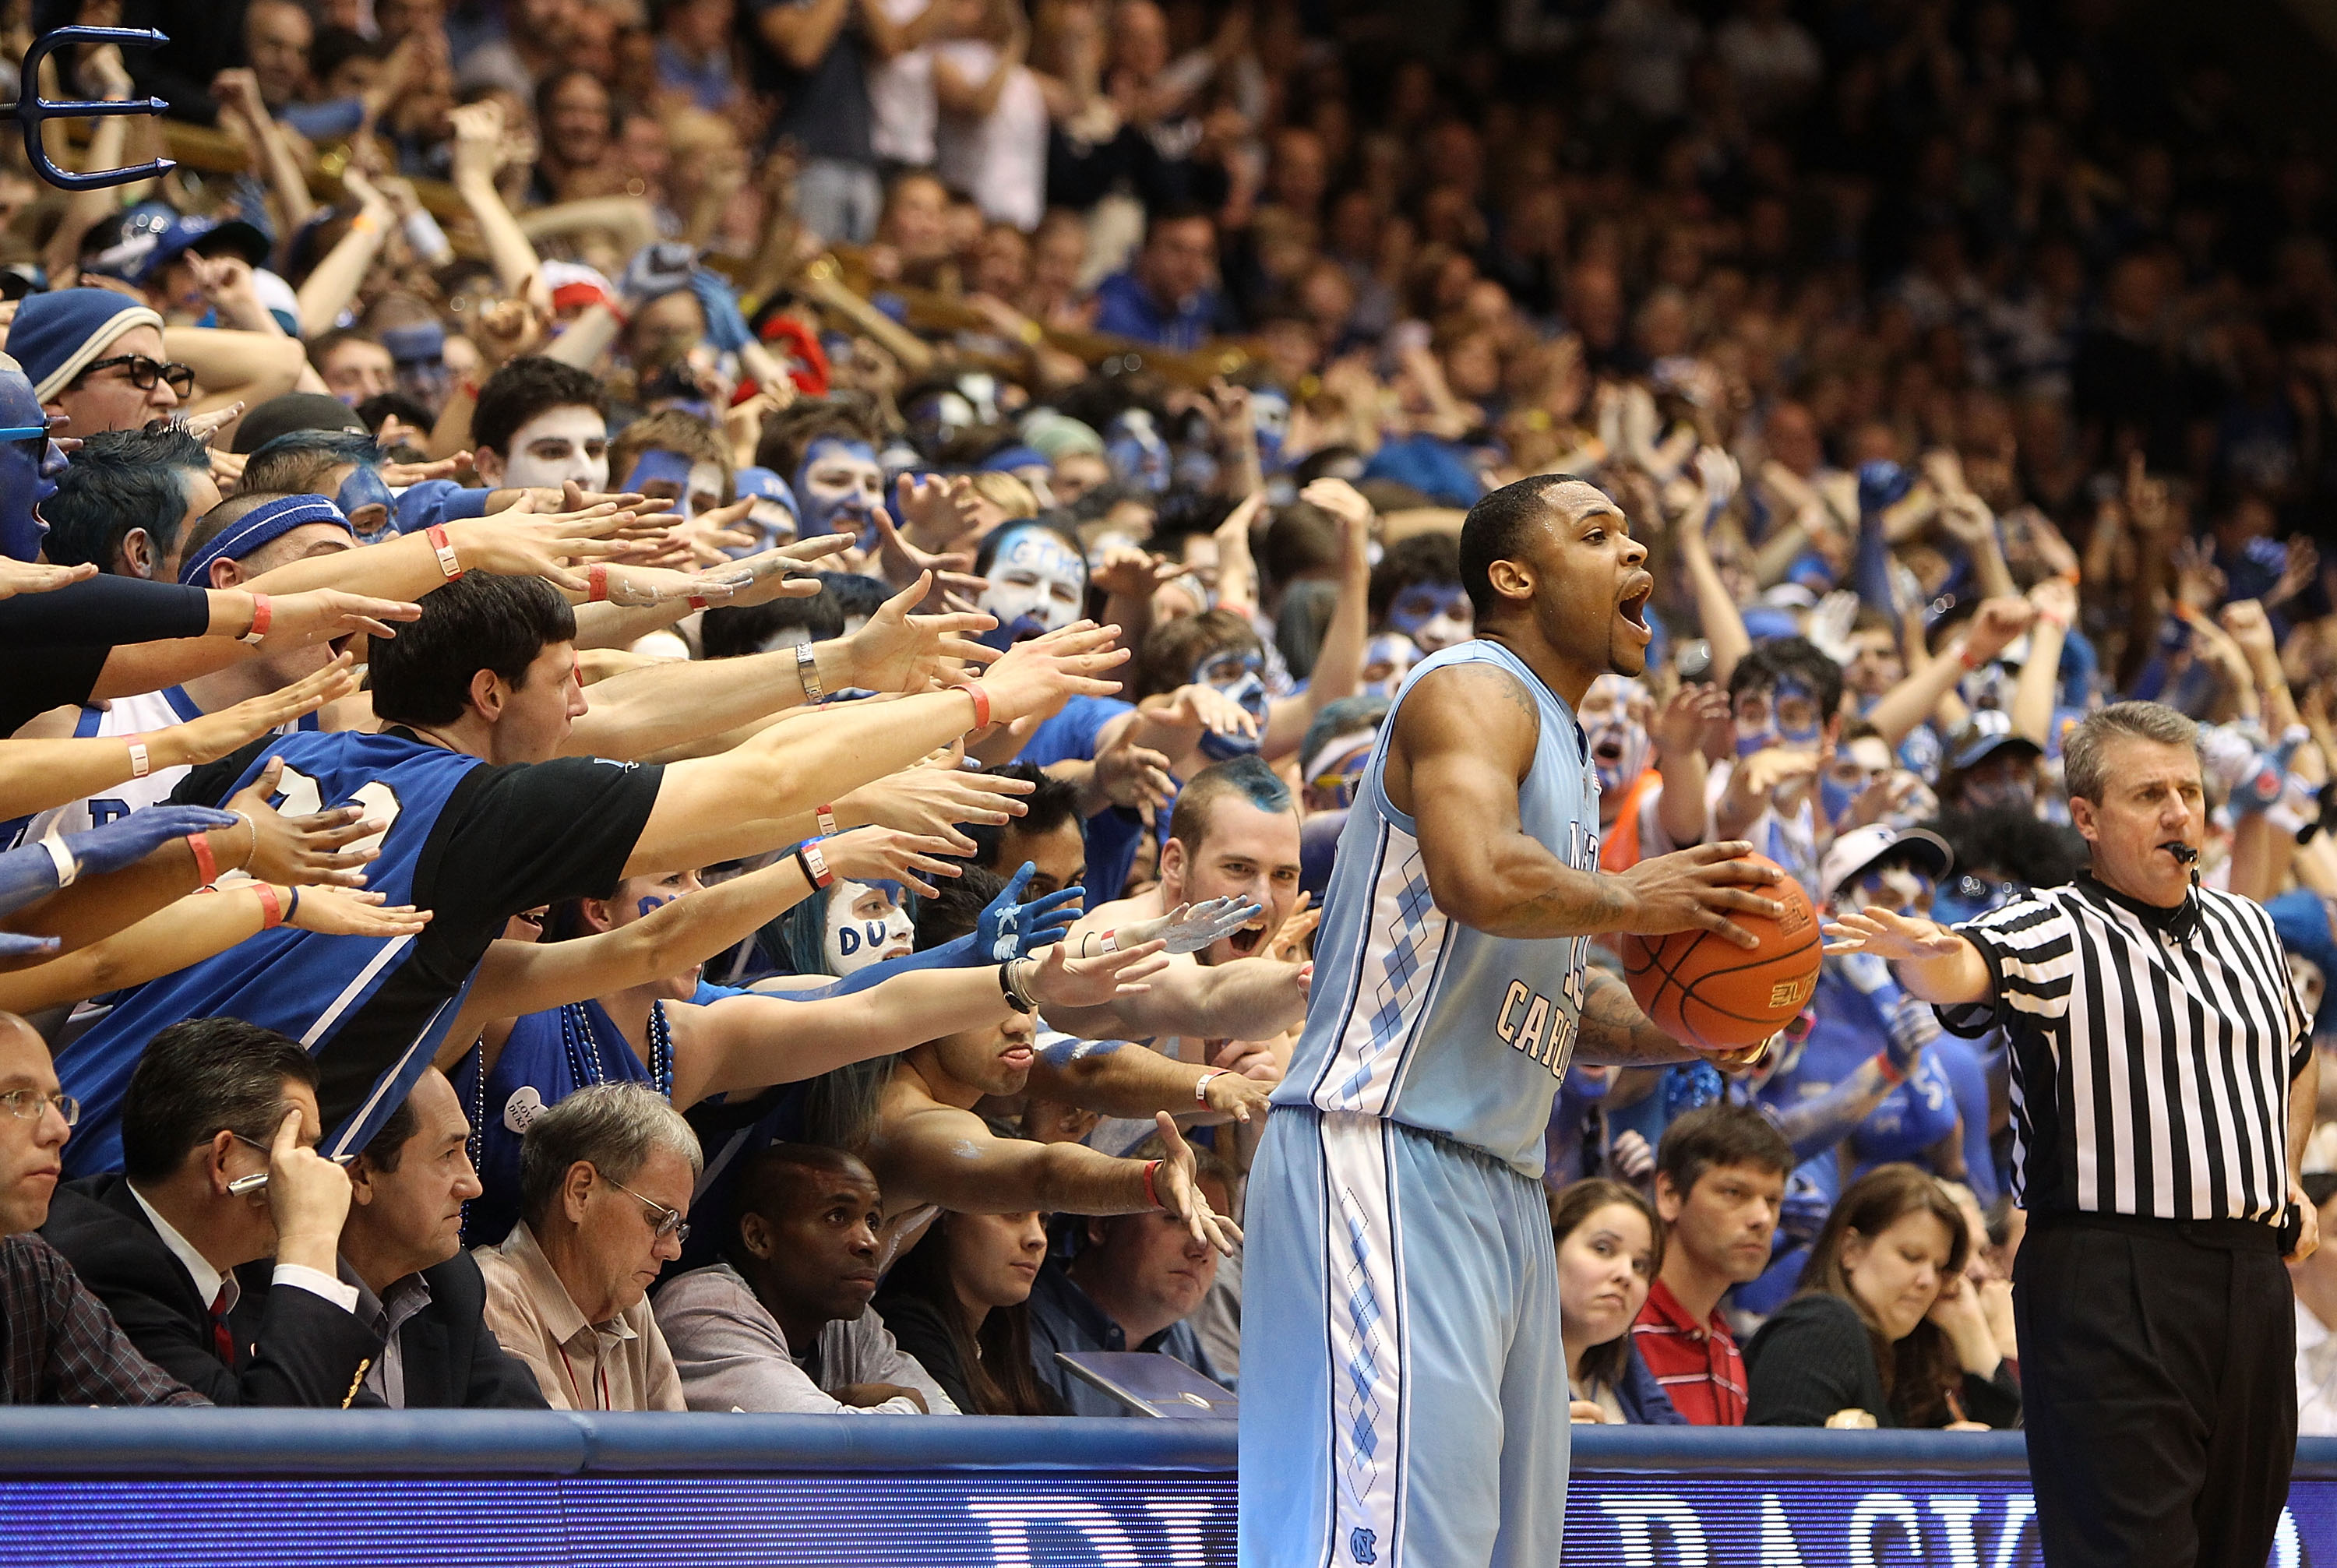 DURHAM, NC - MARCH 06:  Will Graves #13 of the North Carolina Tar Heels tries to throw the ball in bounds against the Duke Blue Devils during their game at Cameron Indoor Stadium on March 6, 2010 in Durham, North Carolina.  (Photo by Streeter Lecka/Getty